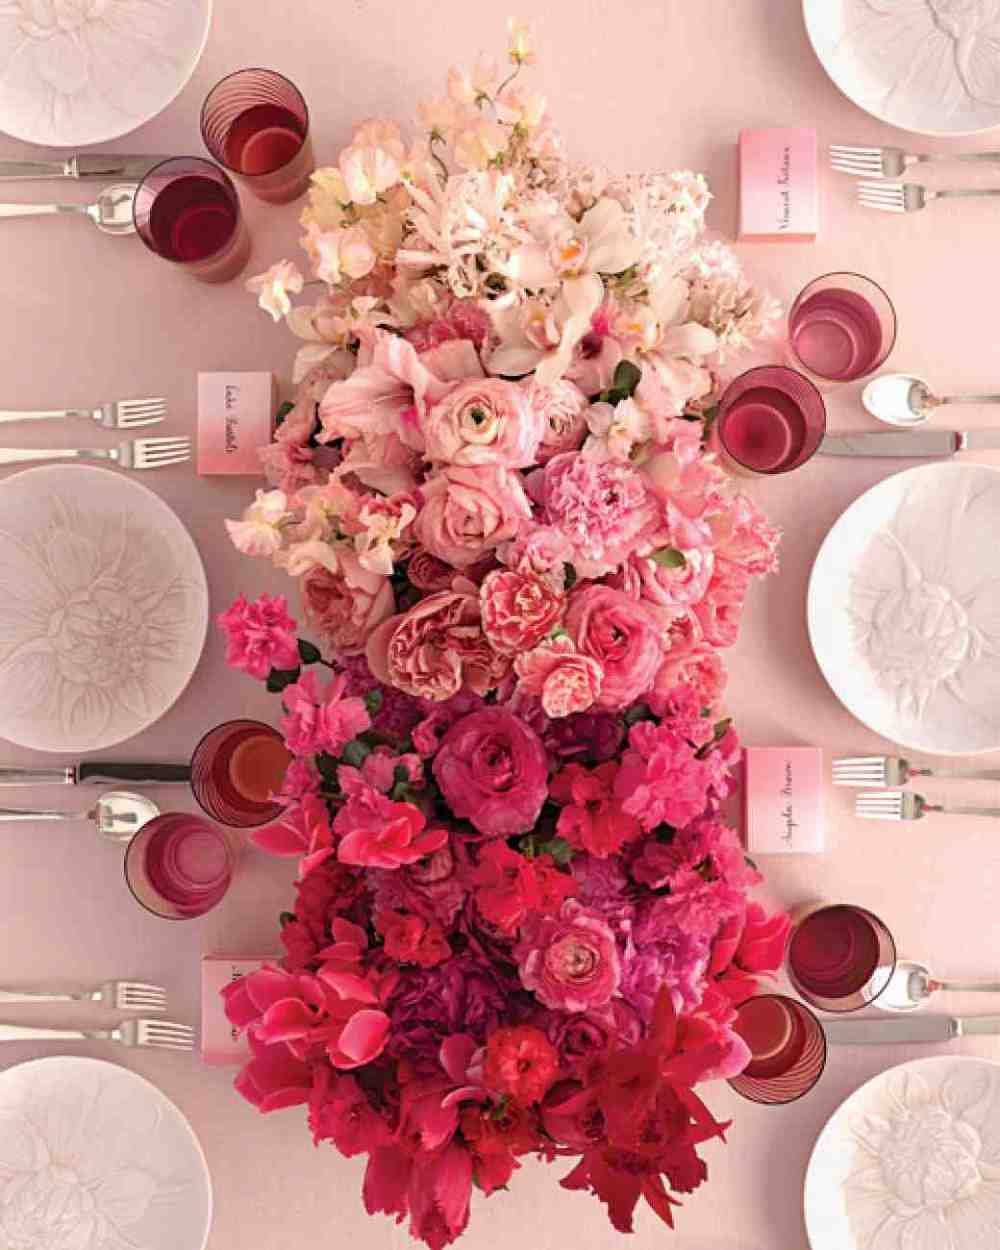 Via Martha Stewart Weddings